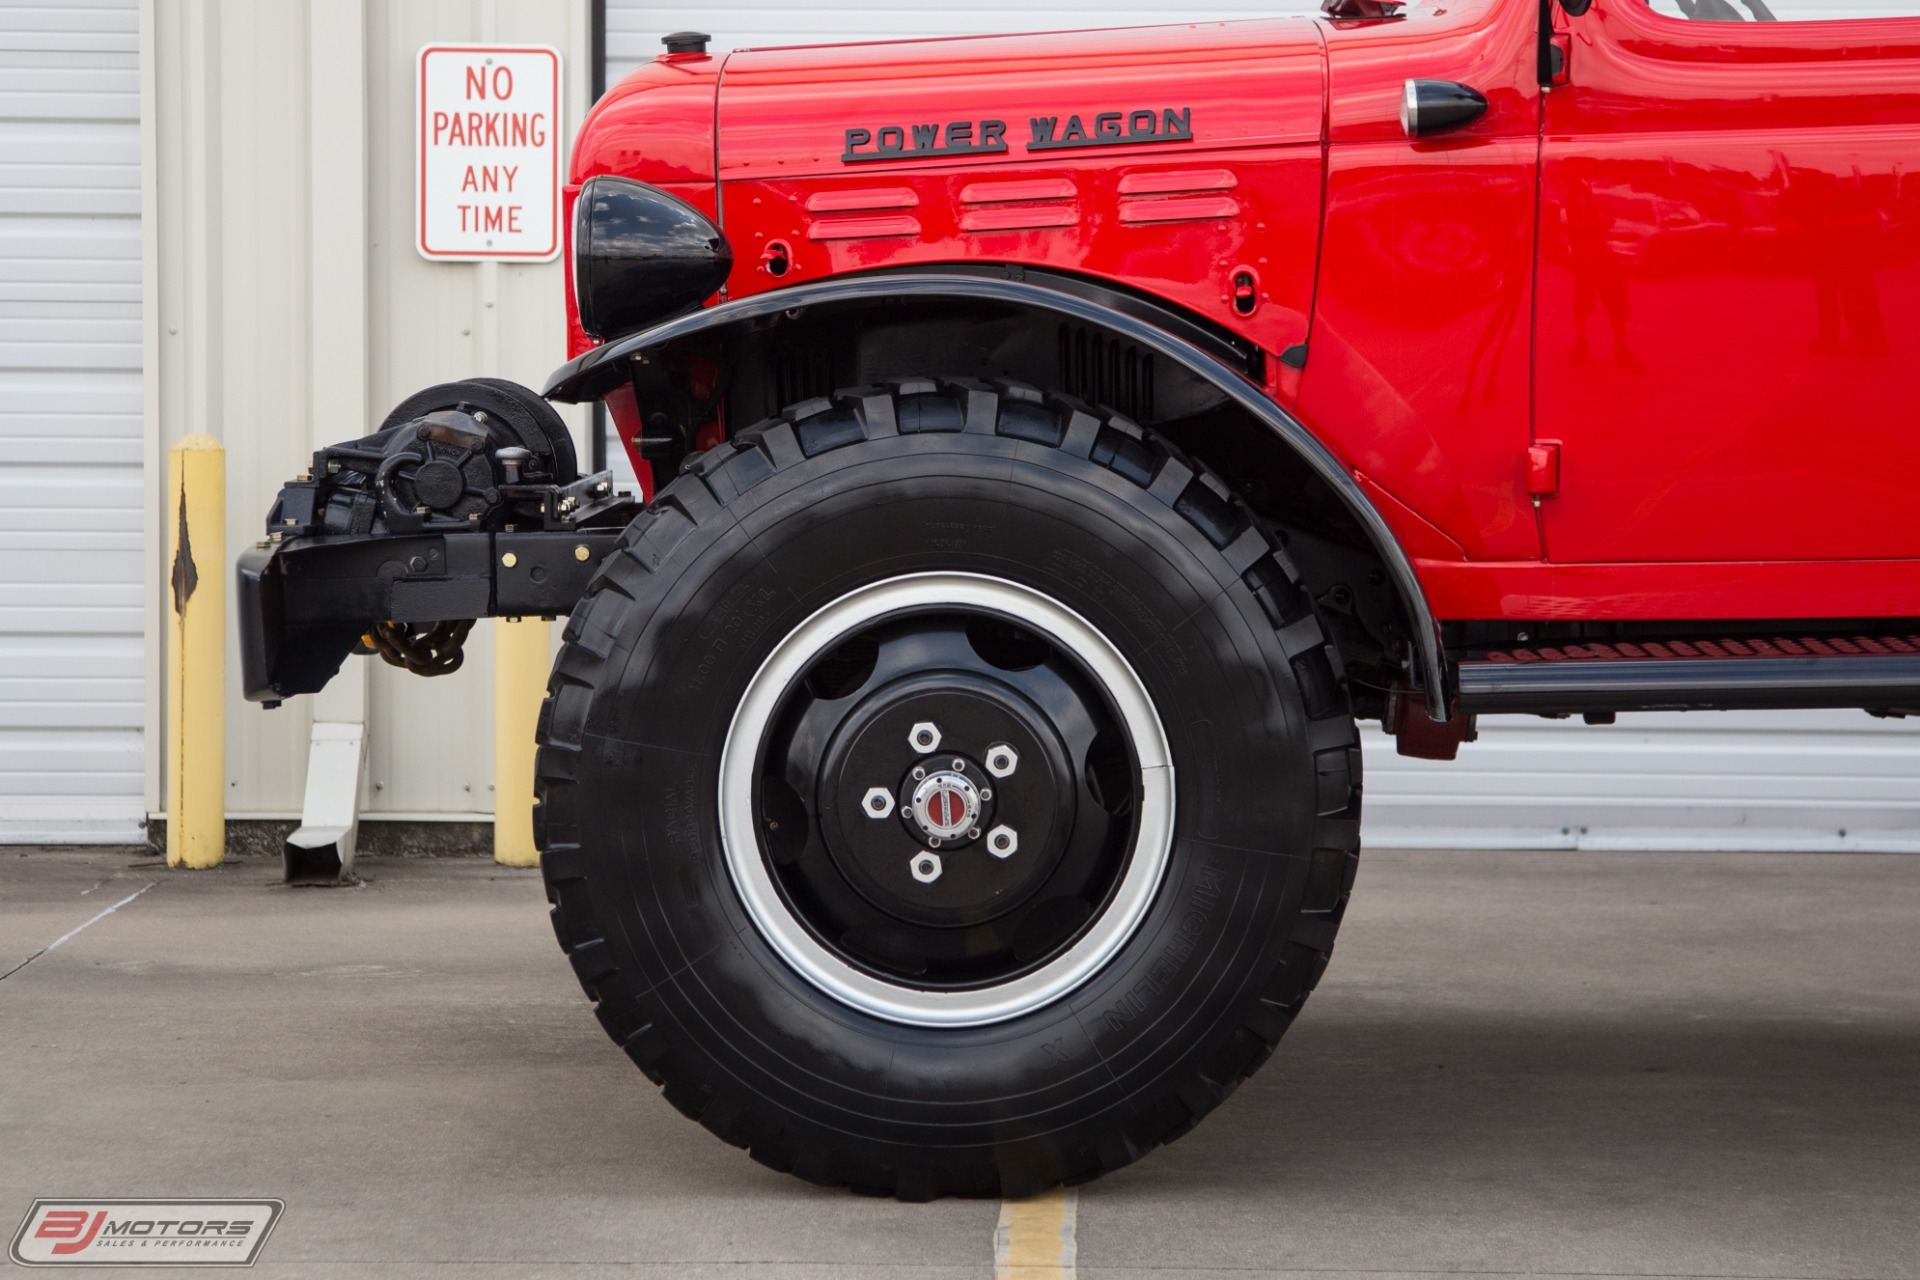 Used-1950-Dodge-Power-Wagon-Full-Restoration